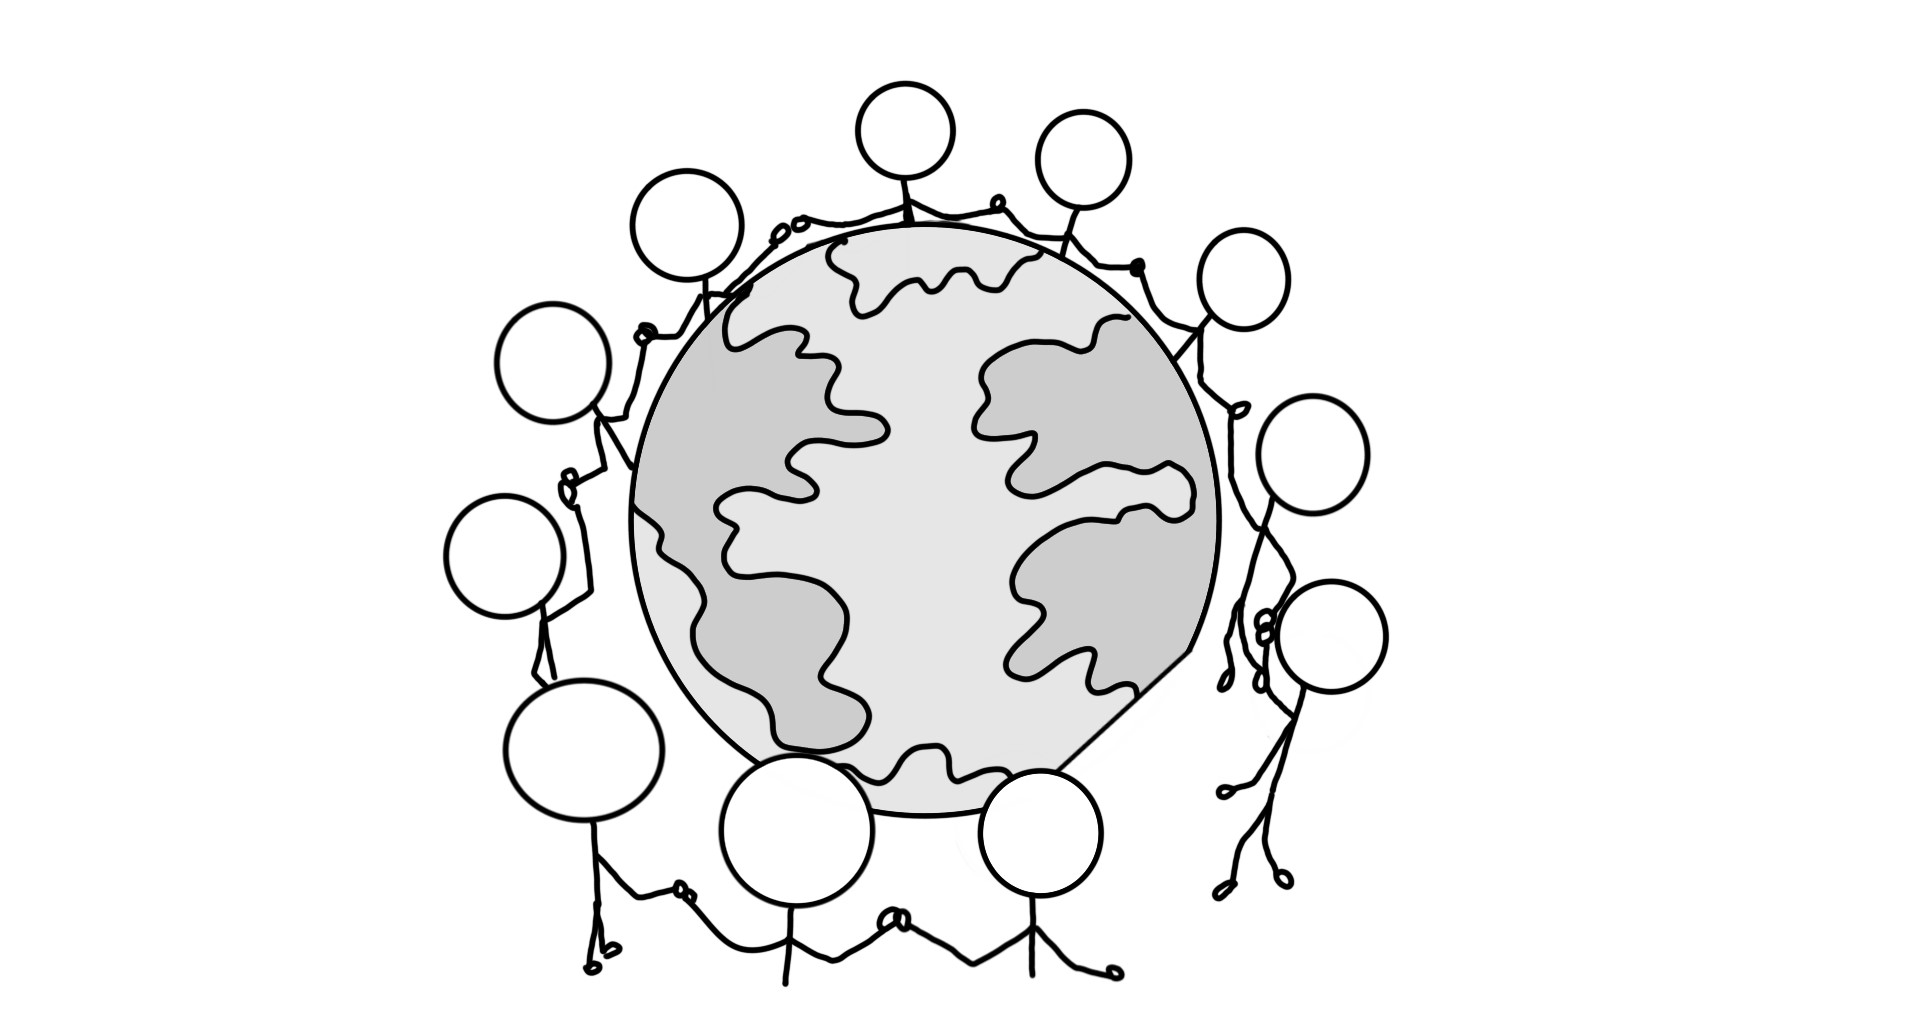 Hey Genius Custom Illustration. Stick figures encircle the world, holding hands.